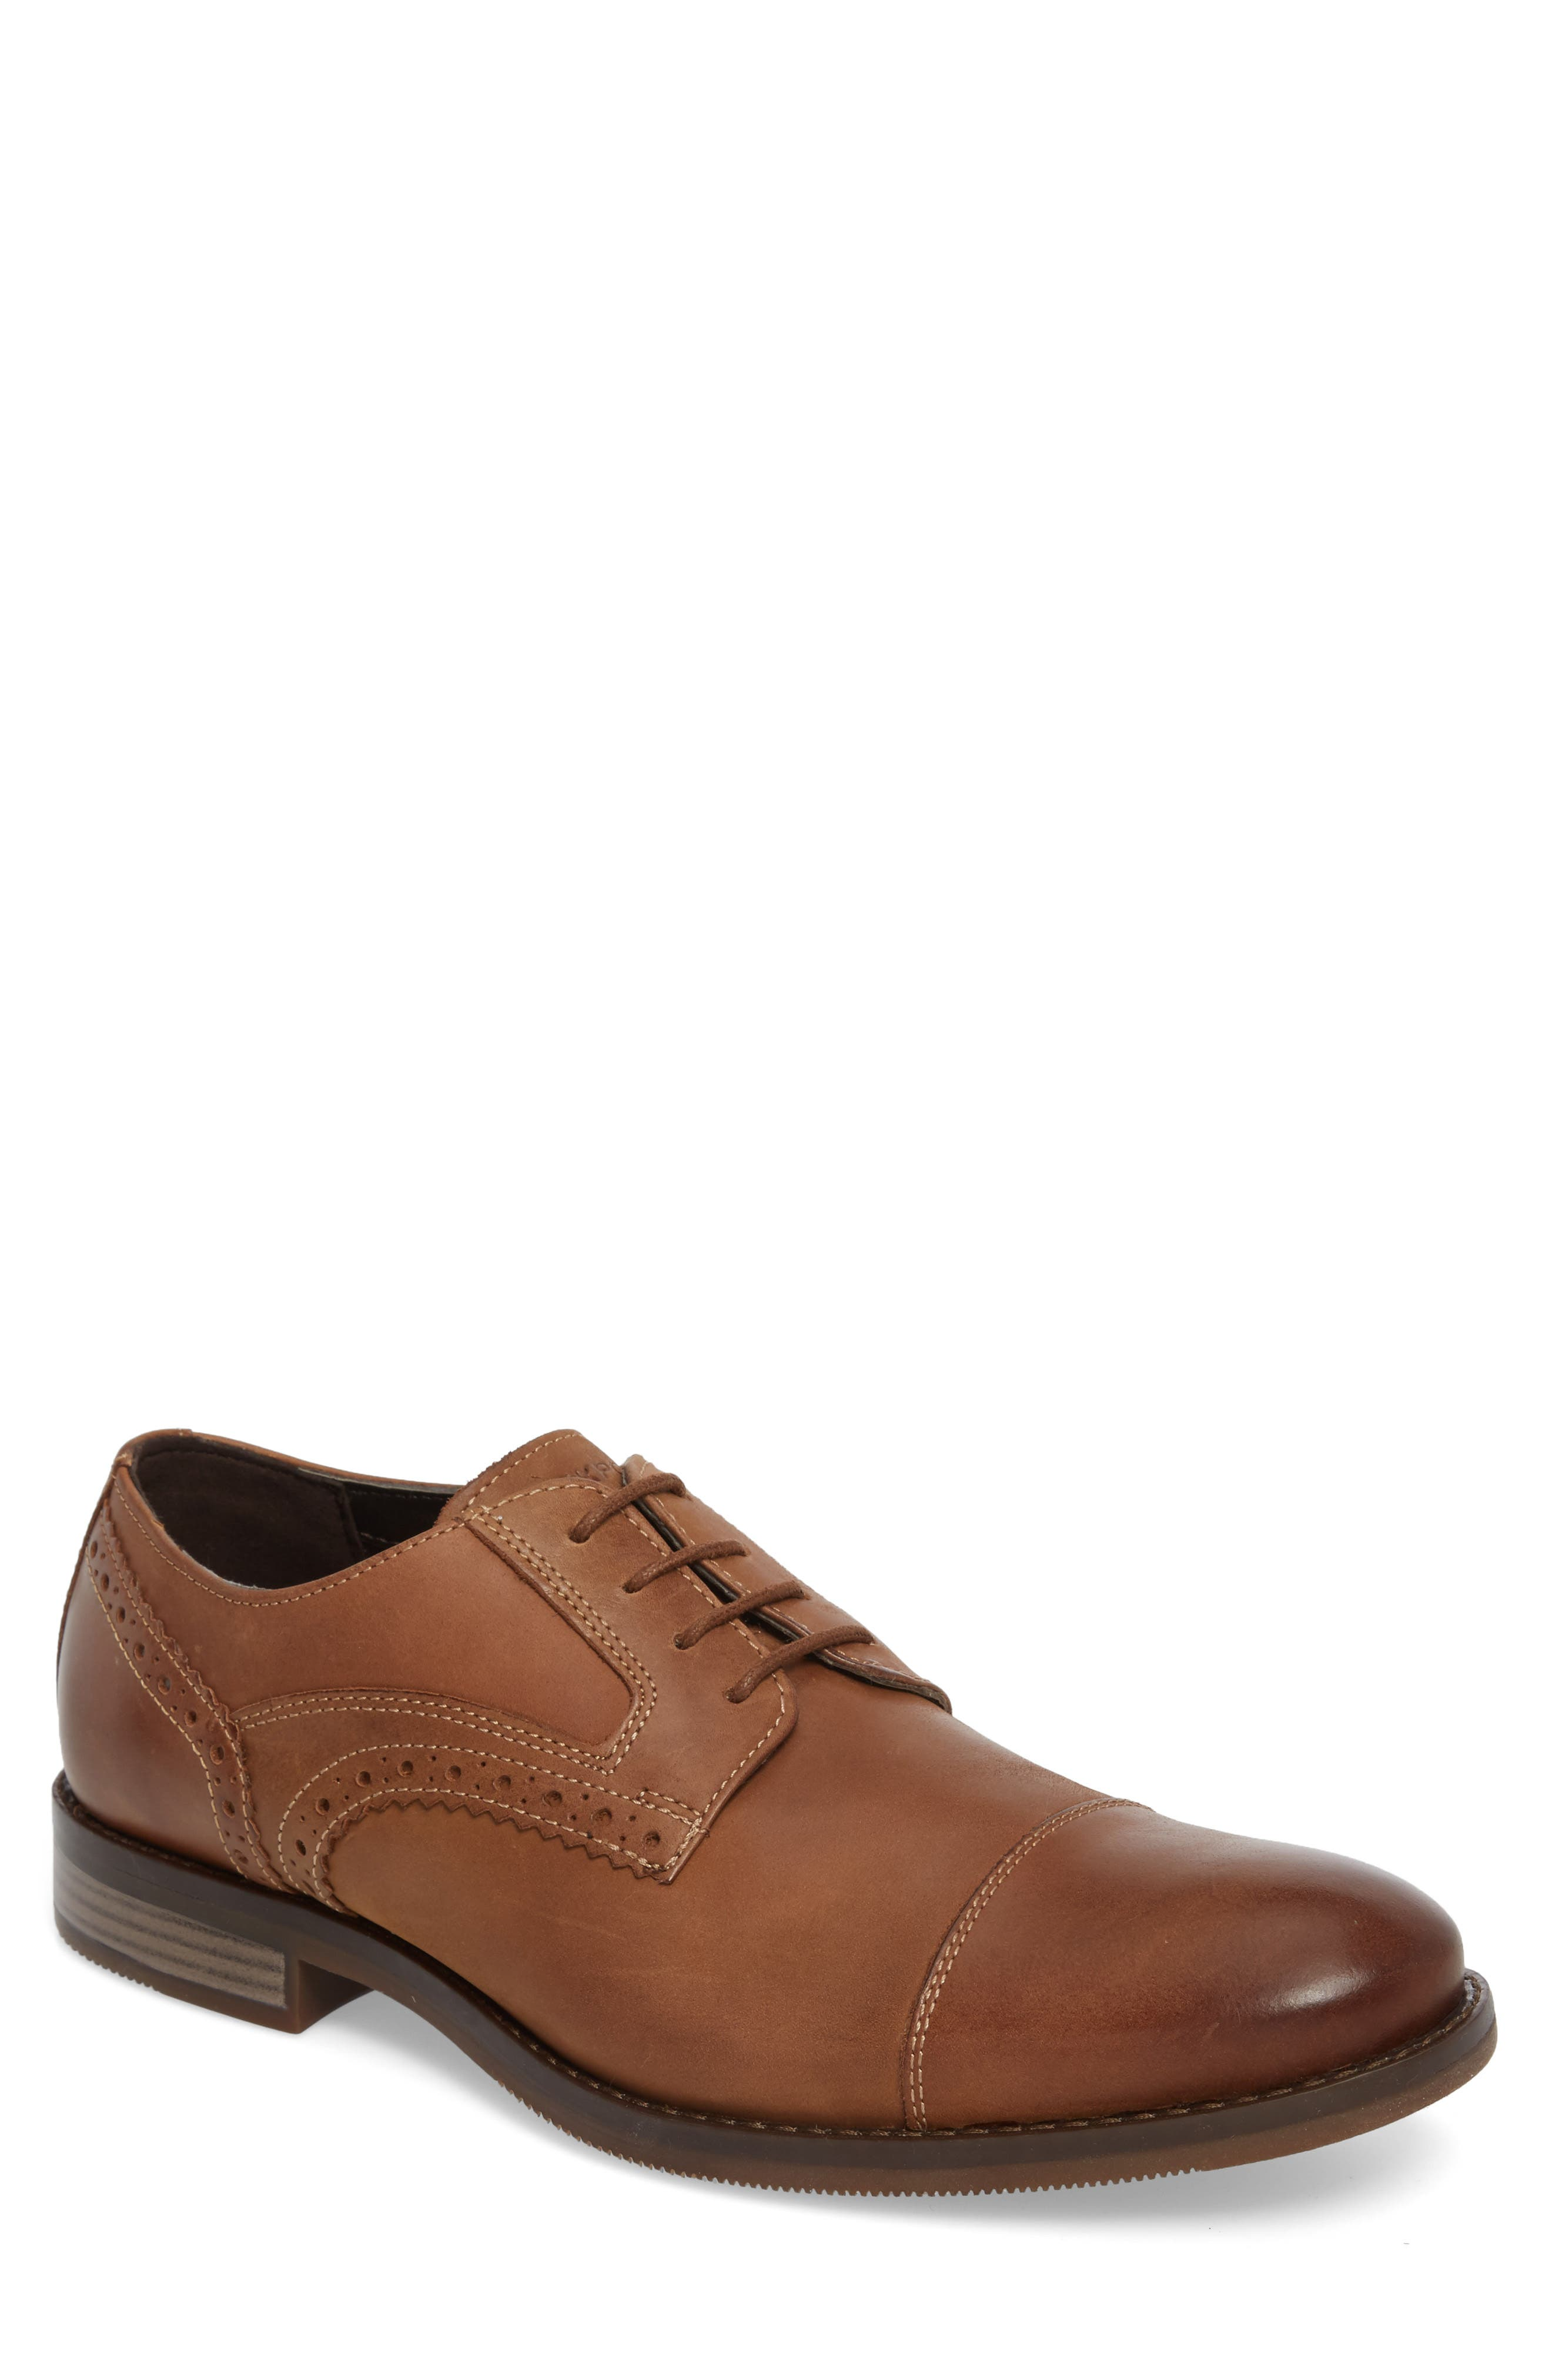 Wynston Cap Toe Blucher,                             Main thumbnail 1, color,                             Tobacco Leather